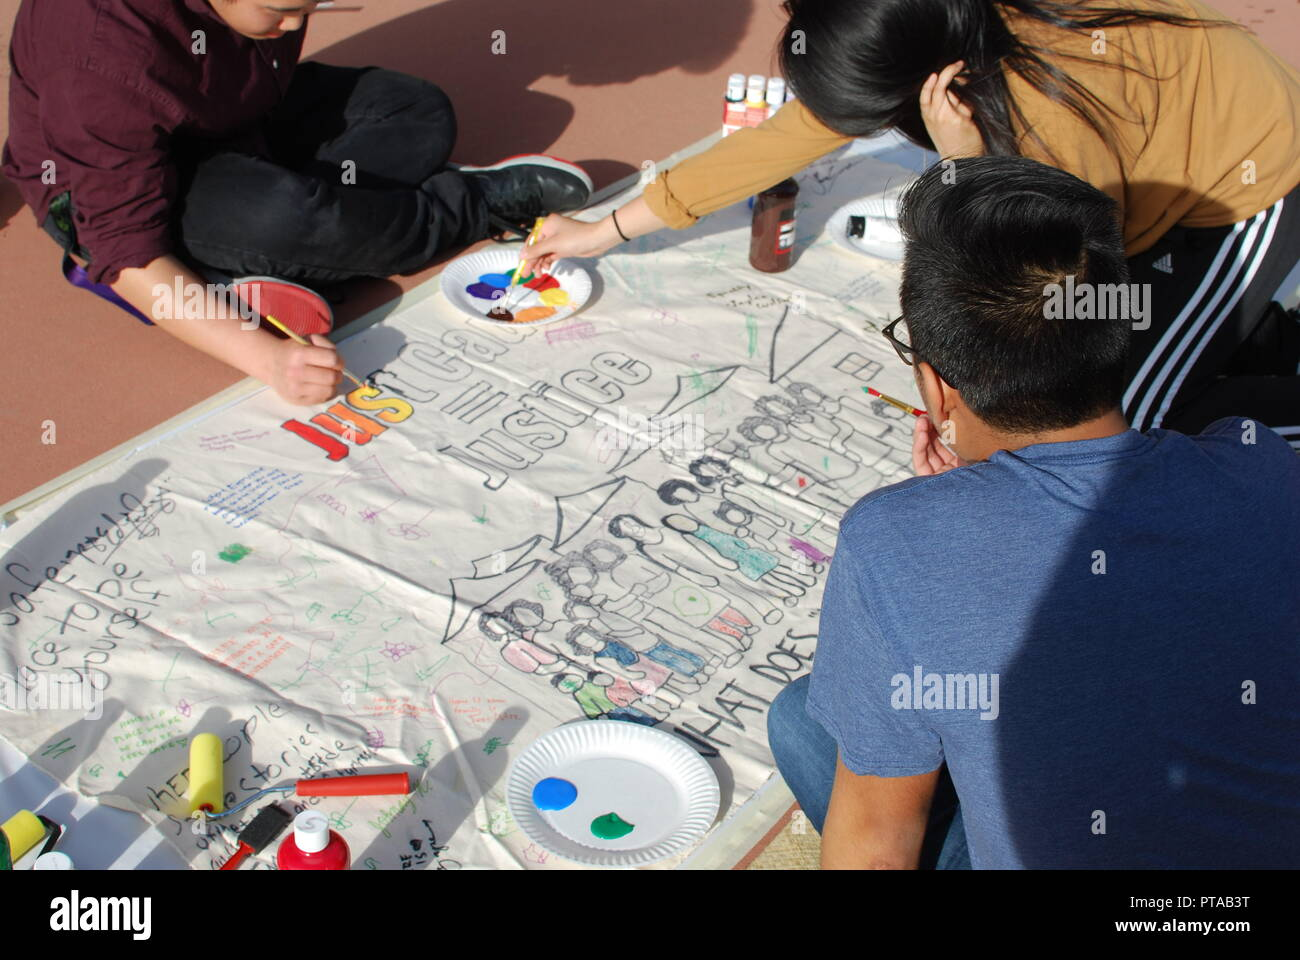 Activists with the Alameda Renters Coalition paint a banner before a City Council meeting at Alameda City Hall on April 4, 2017. - Stock Image